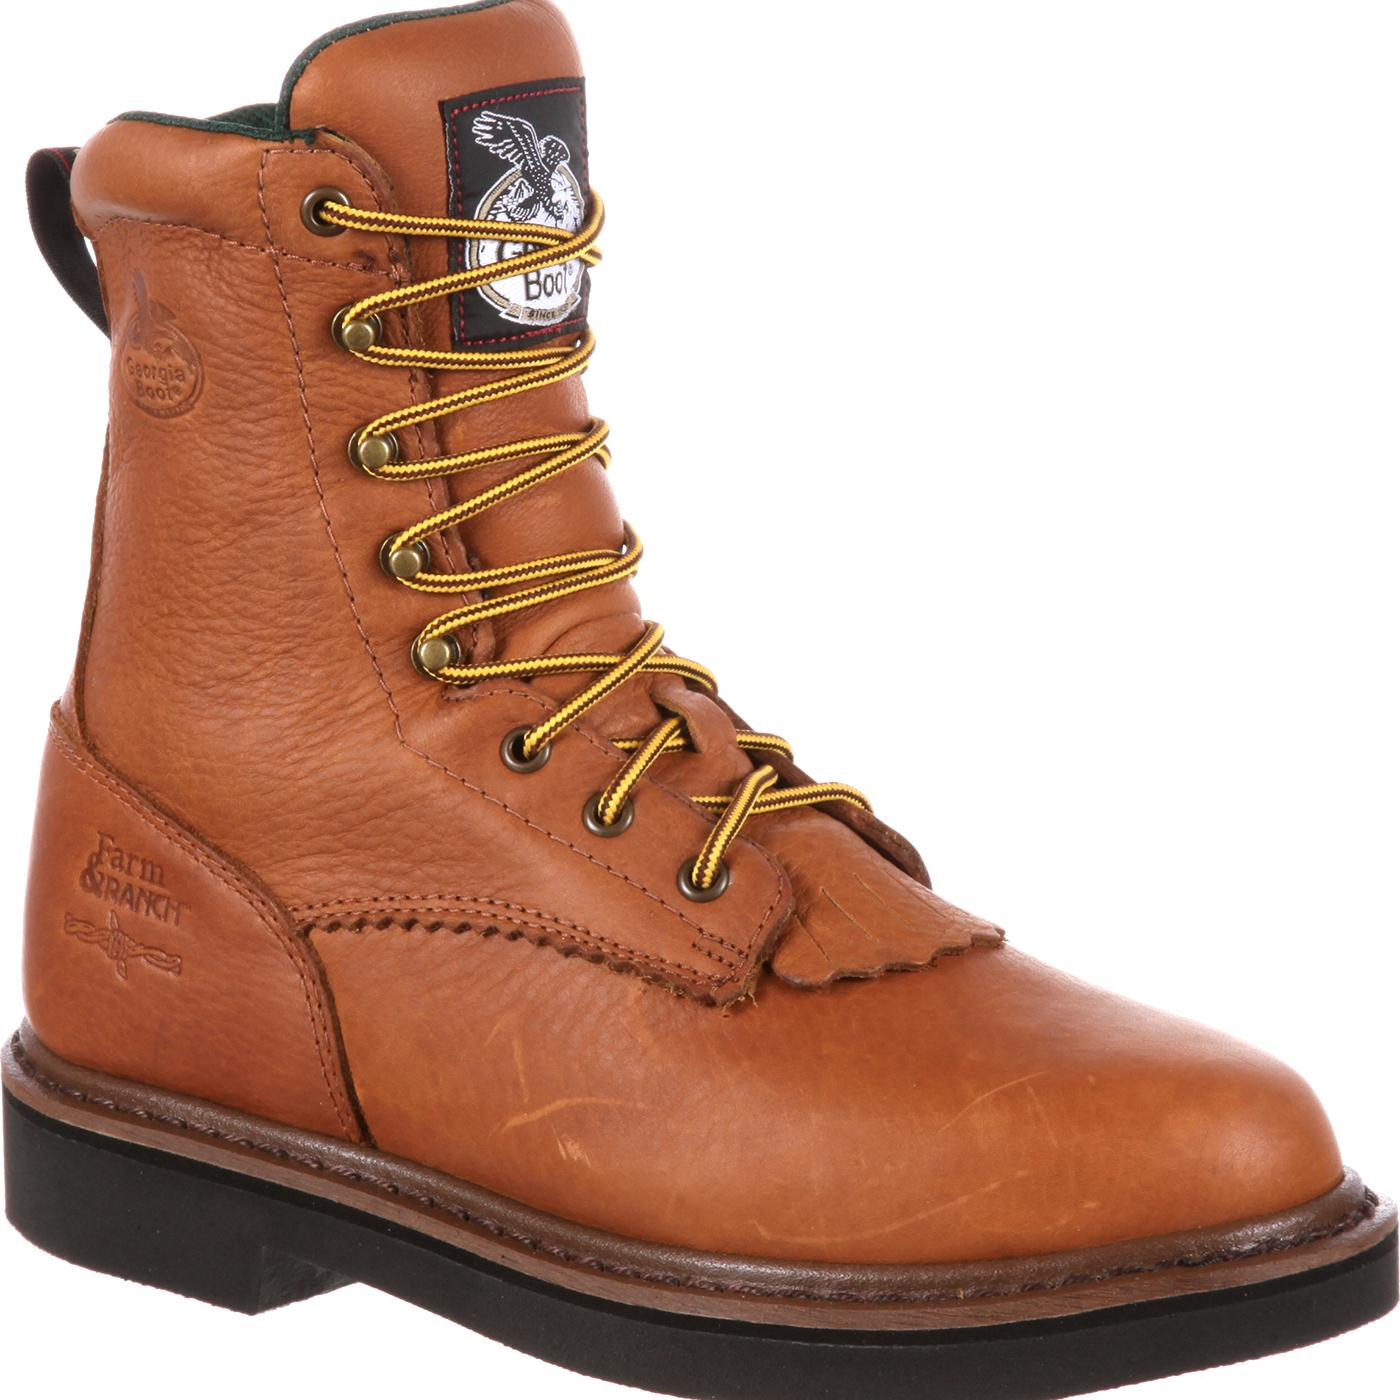 Men S Lacer Work Boots With Spr Leather Georgia Boot G7013